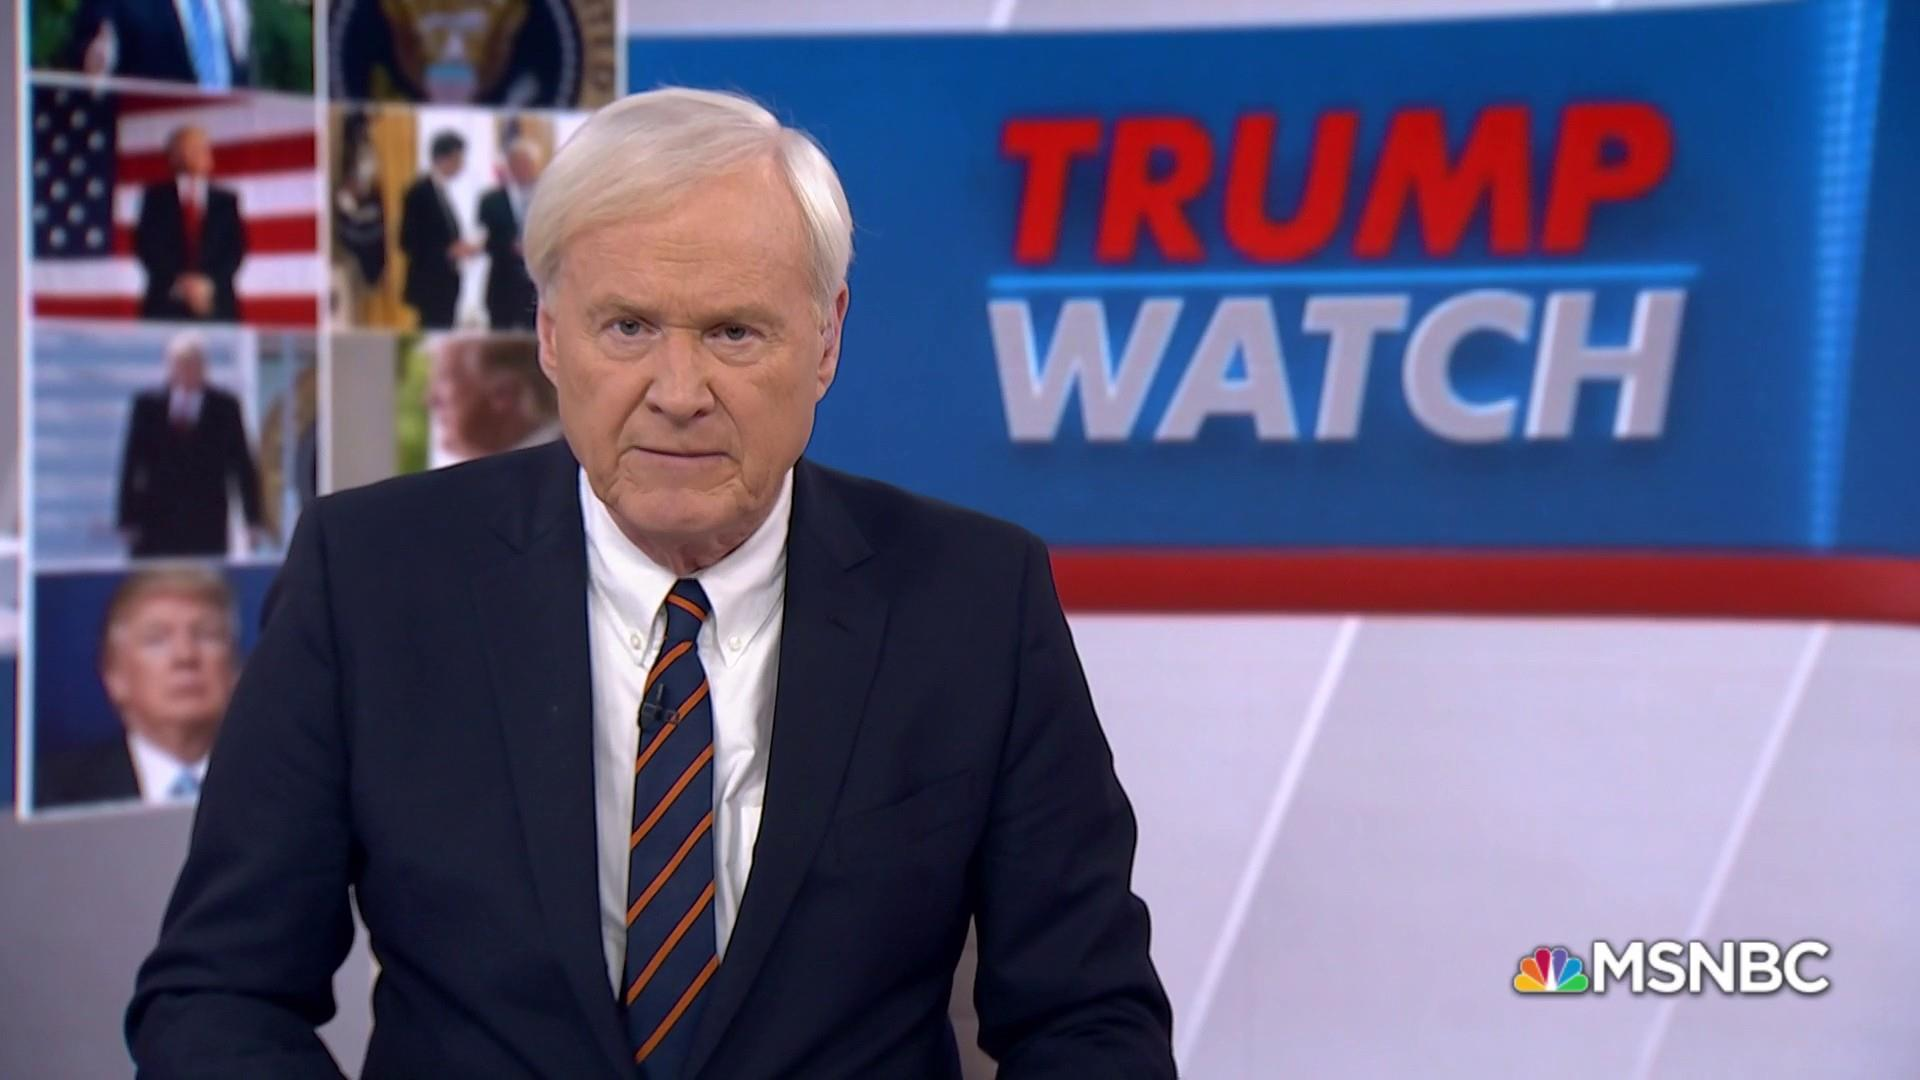 Matthews: Trump moving us closer to war by withdrawing from Iran Deal